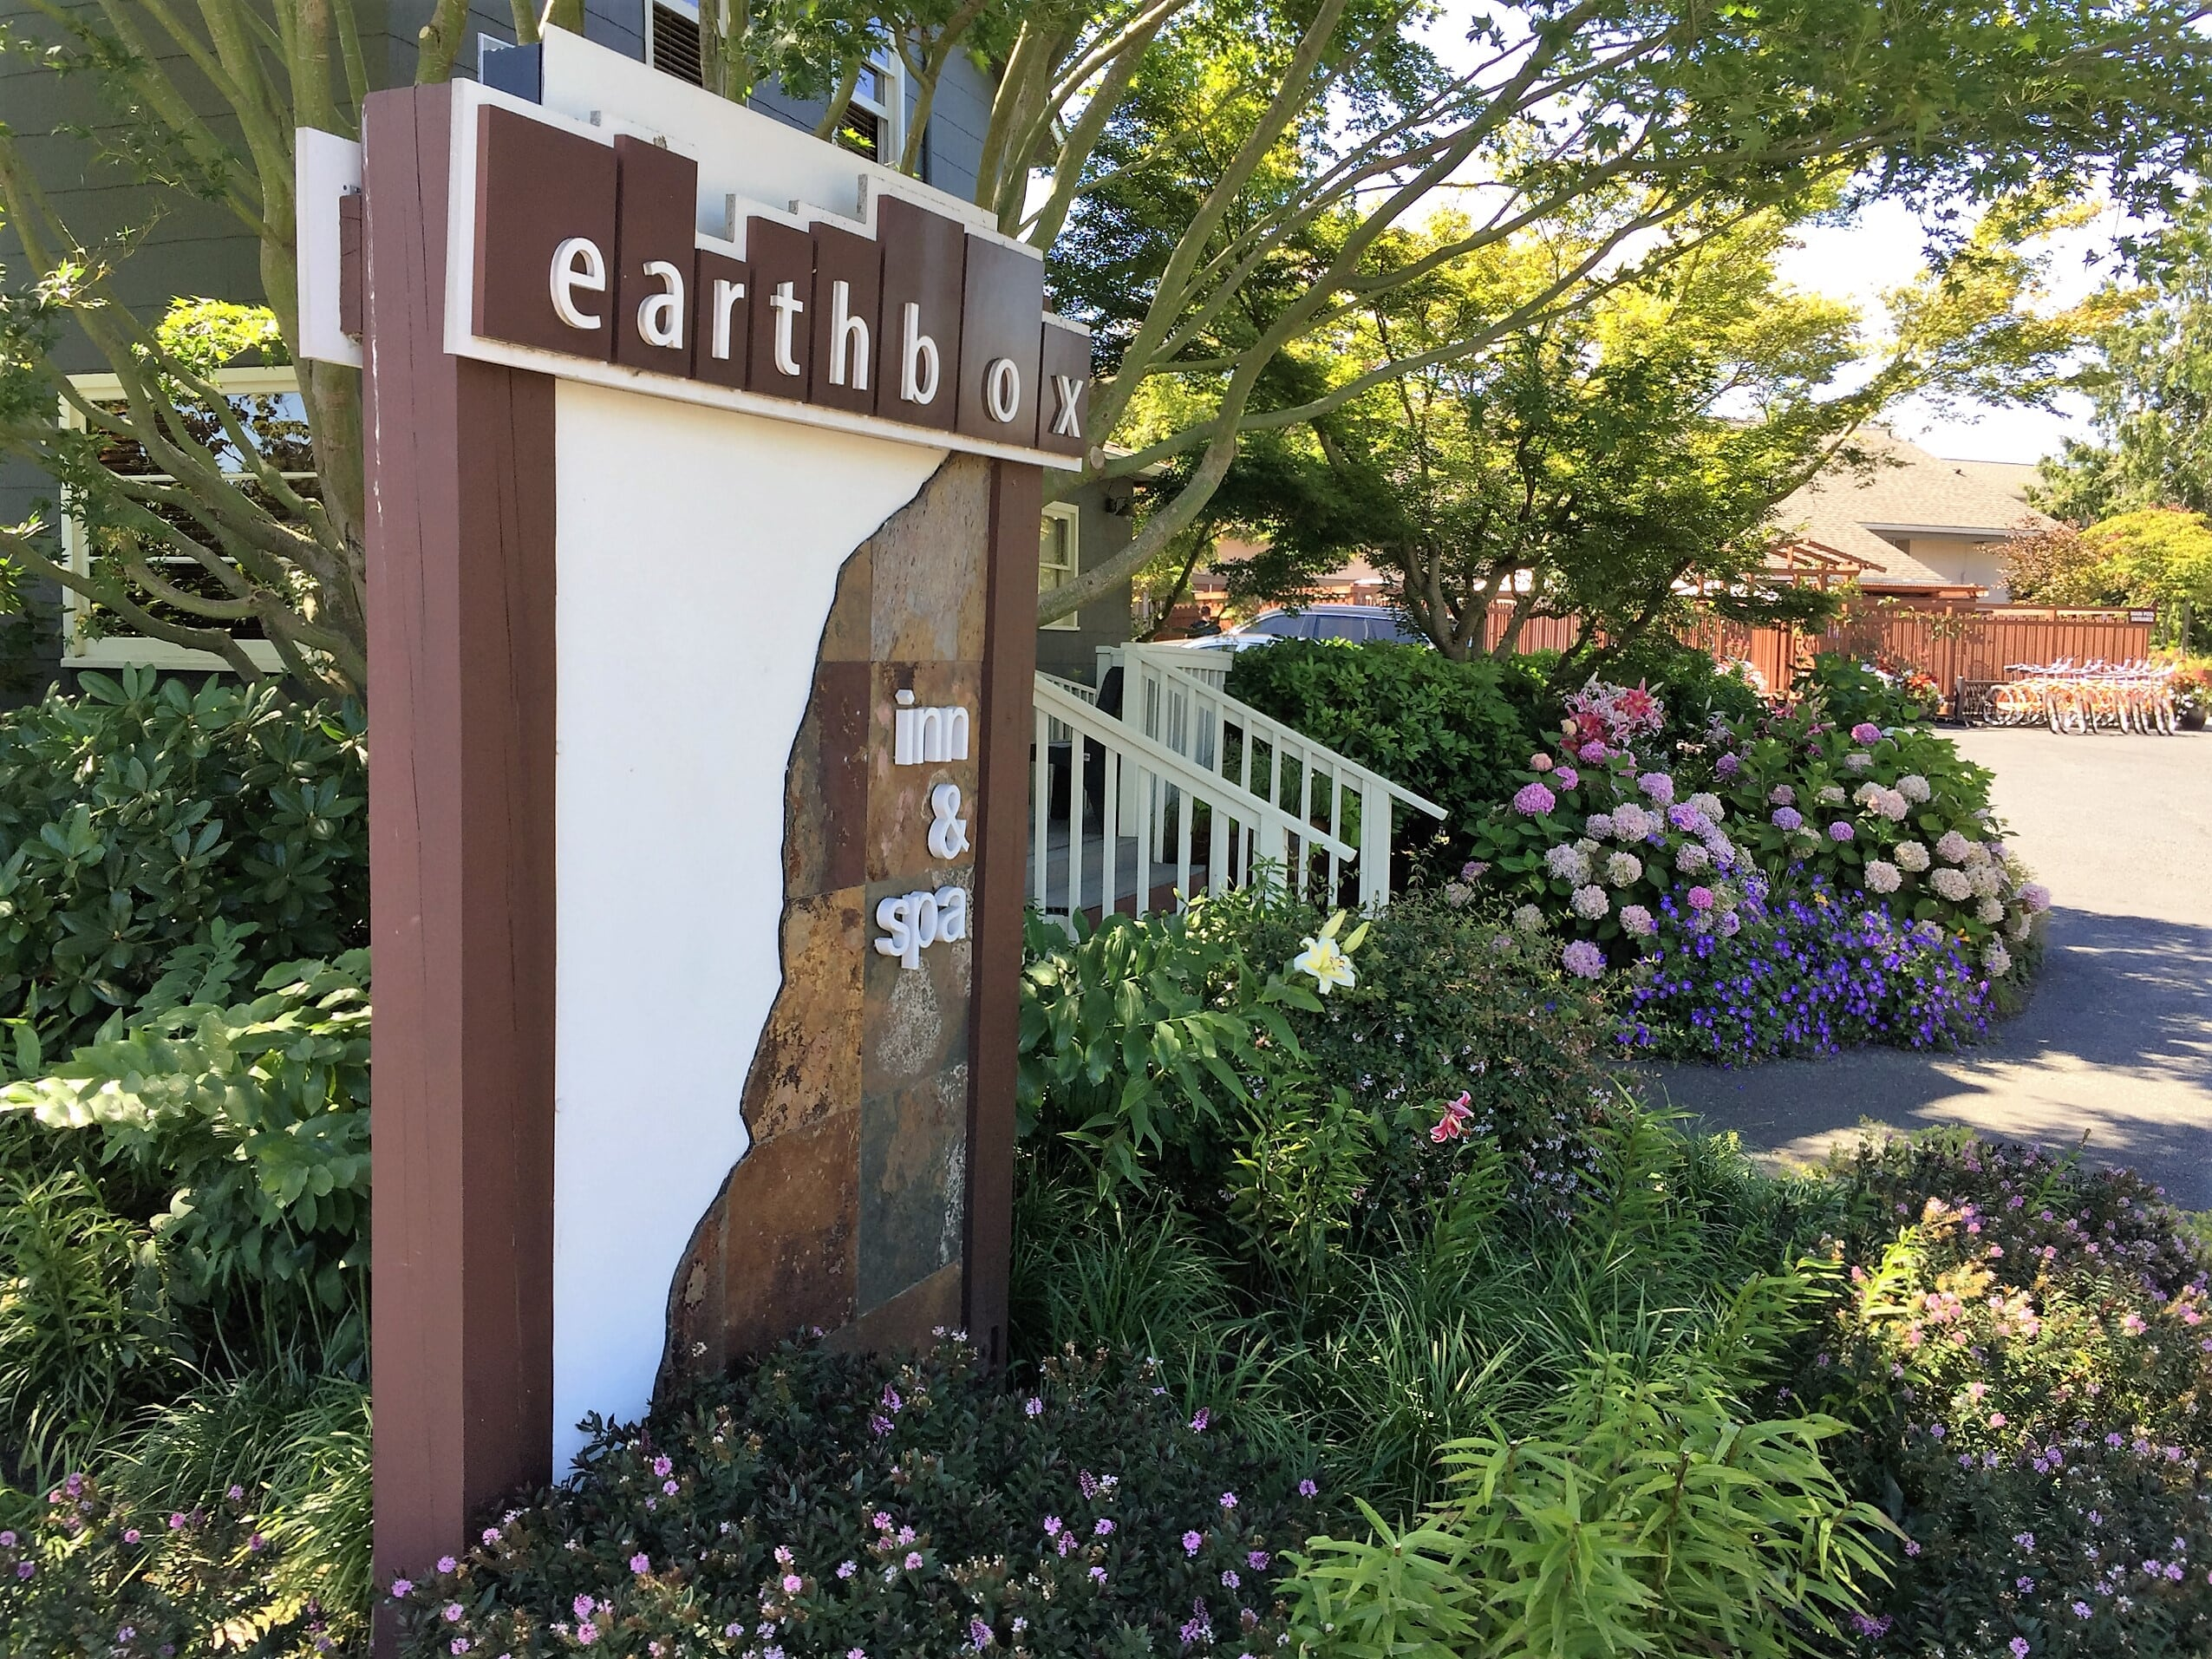 Earthbox Inn & Spa has a variety of rooms to choose from including pet friendly rooms!